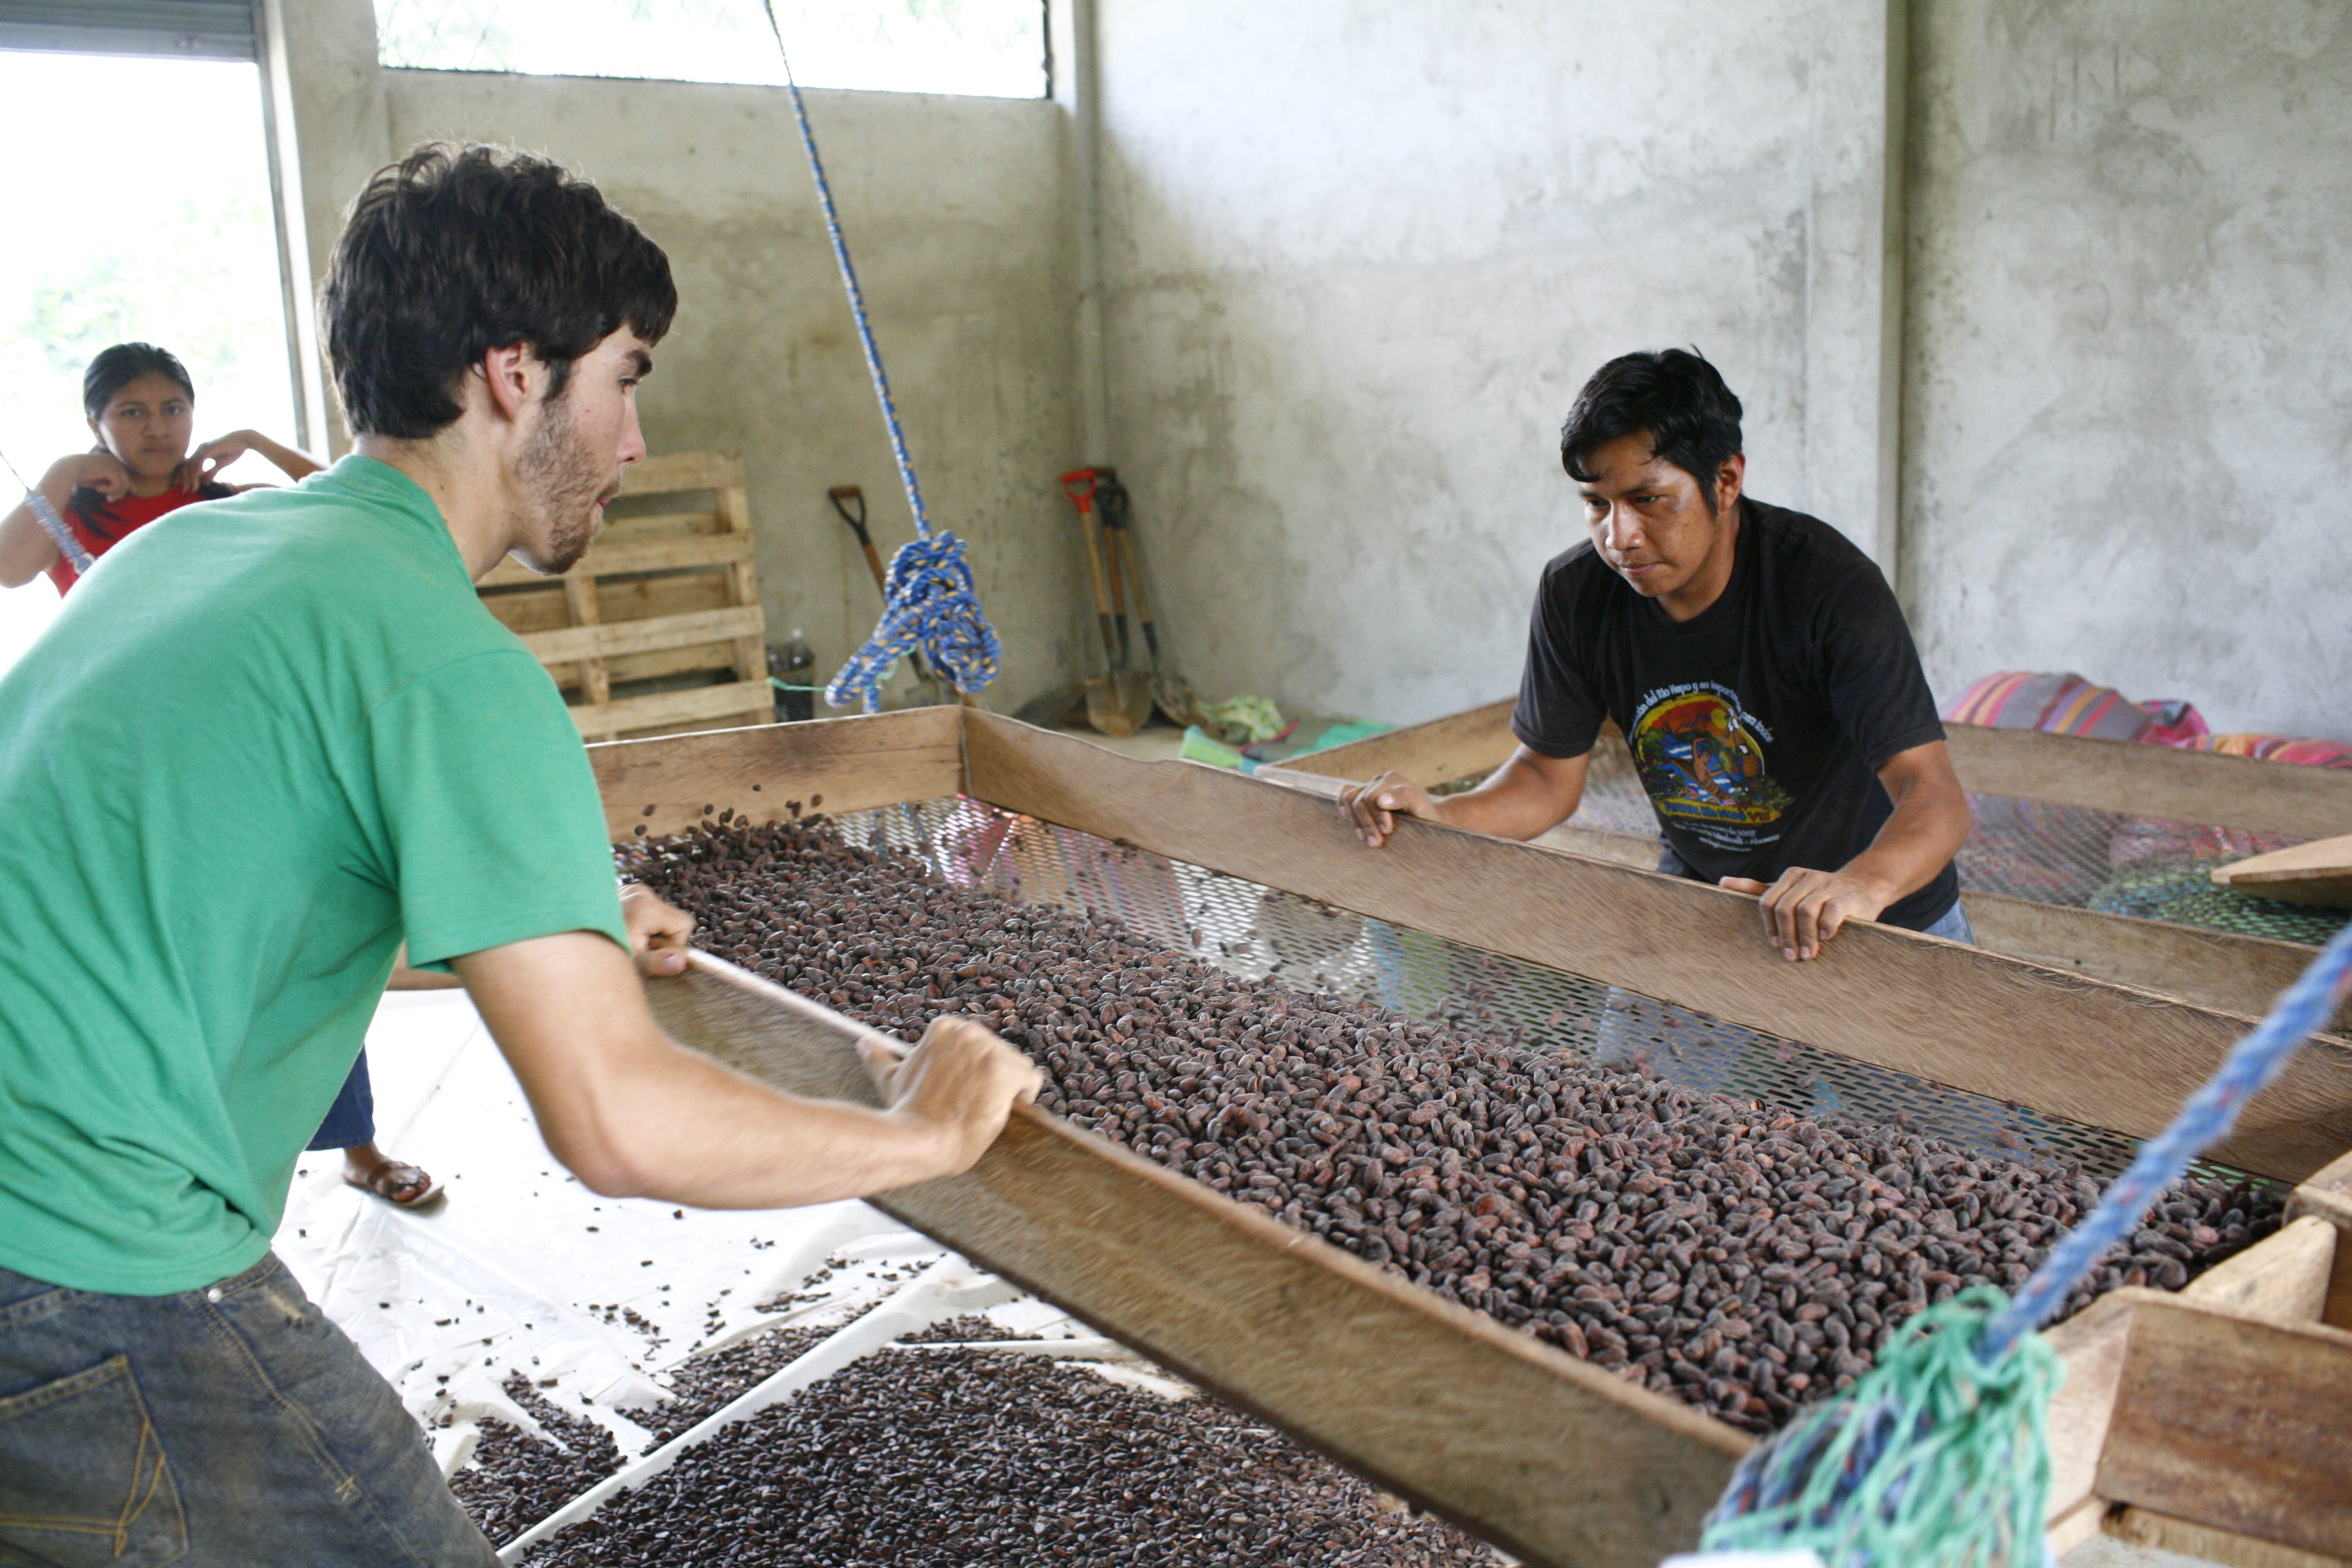 el cacao black personals Ecuador cacao – some of the best chocolate in the world home some of the best chocolate in the world los rios and el oro.